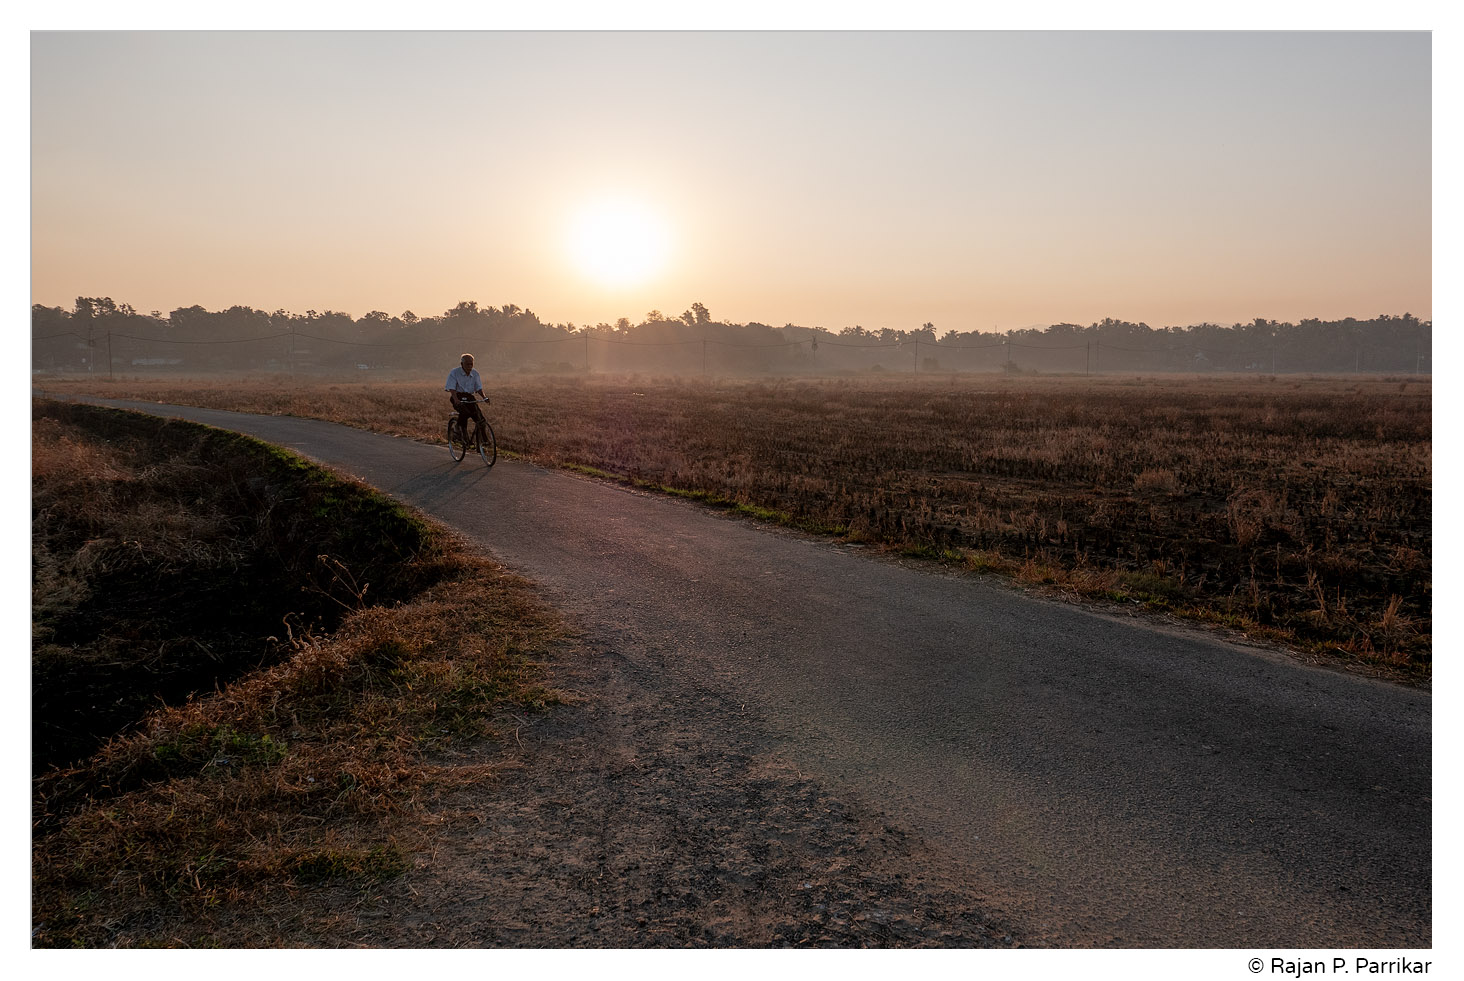 Cycling to New Year's morning mass, St. Estevem, Goa